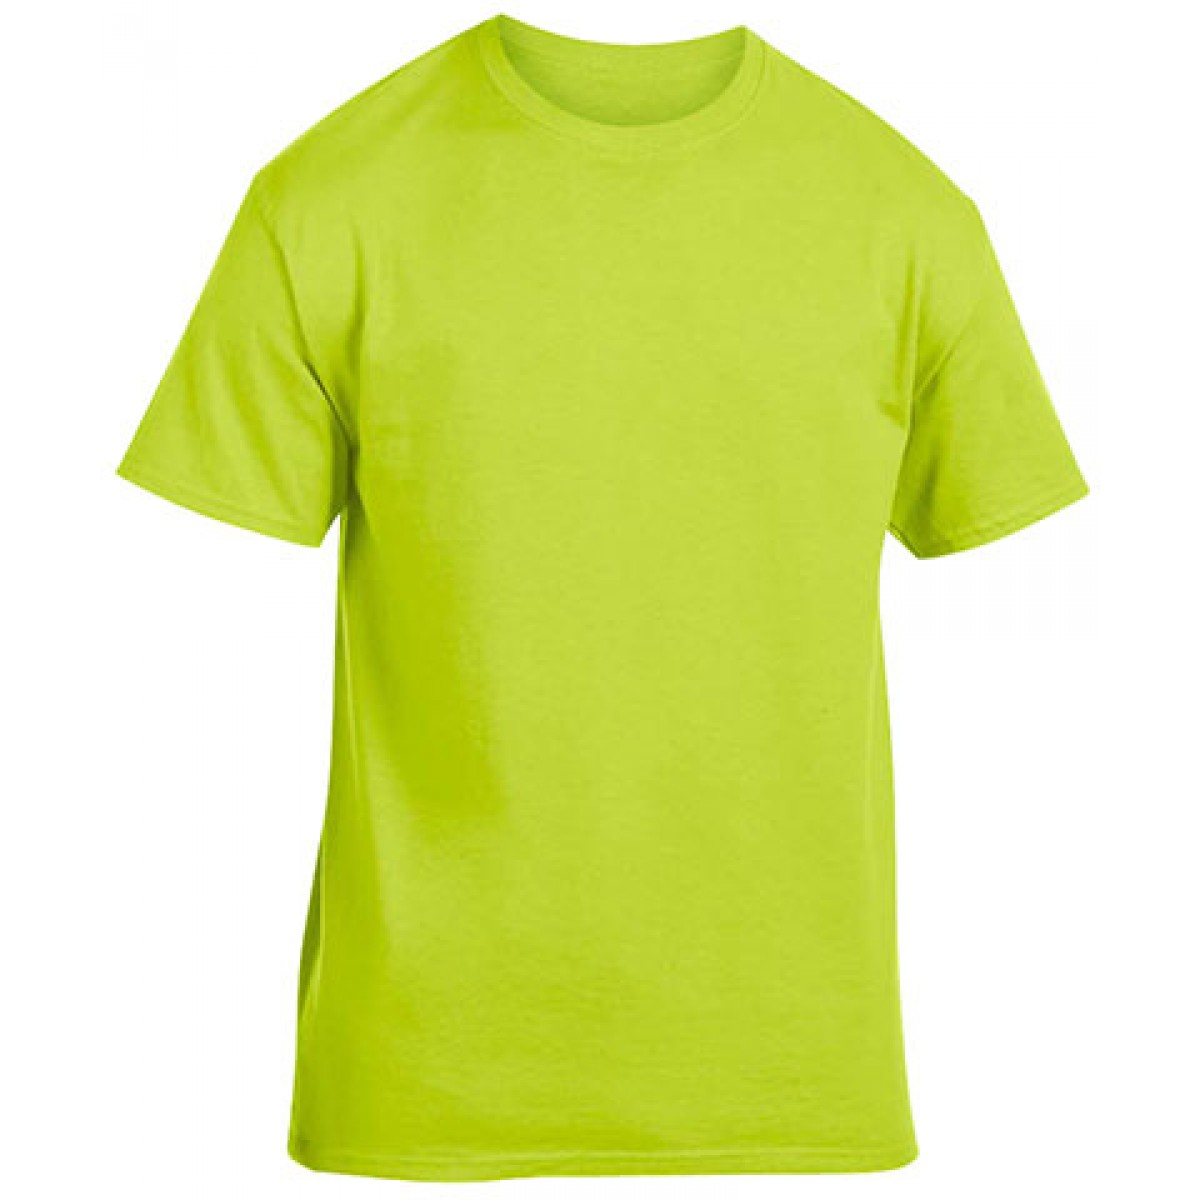 Heavy Cotton Activewear T-Shirt-Safety Green-2XL